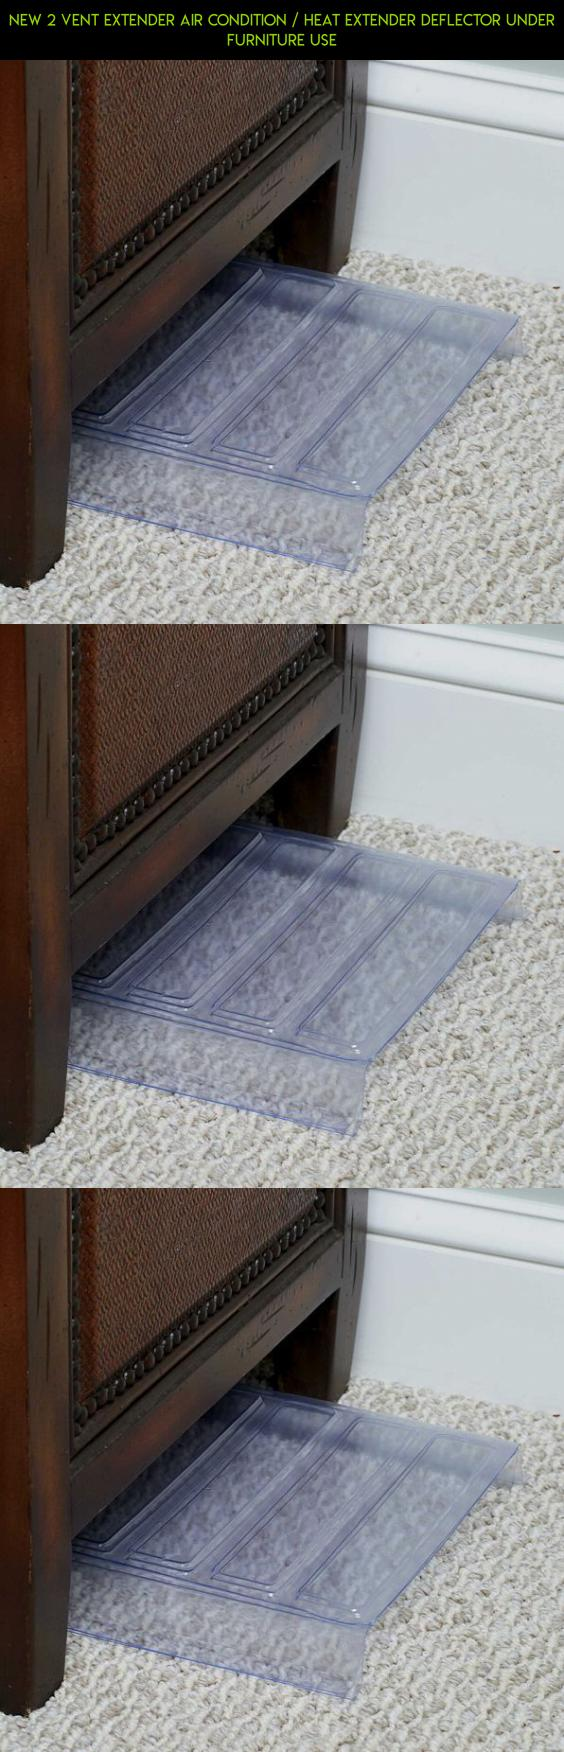 New 2 Vent Extender Air Condition / Heat Extender Deflector Under Furniture  Use #camera #